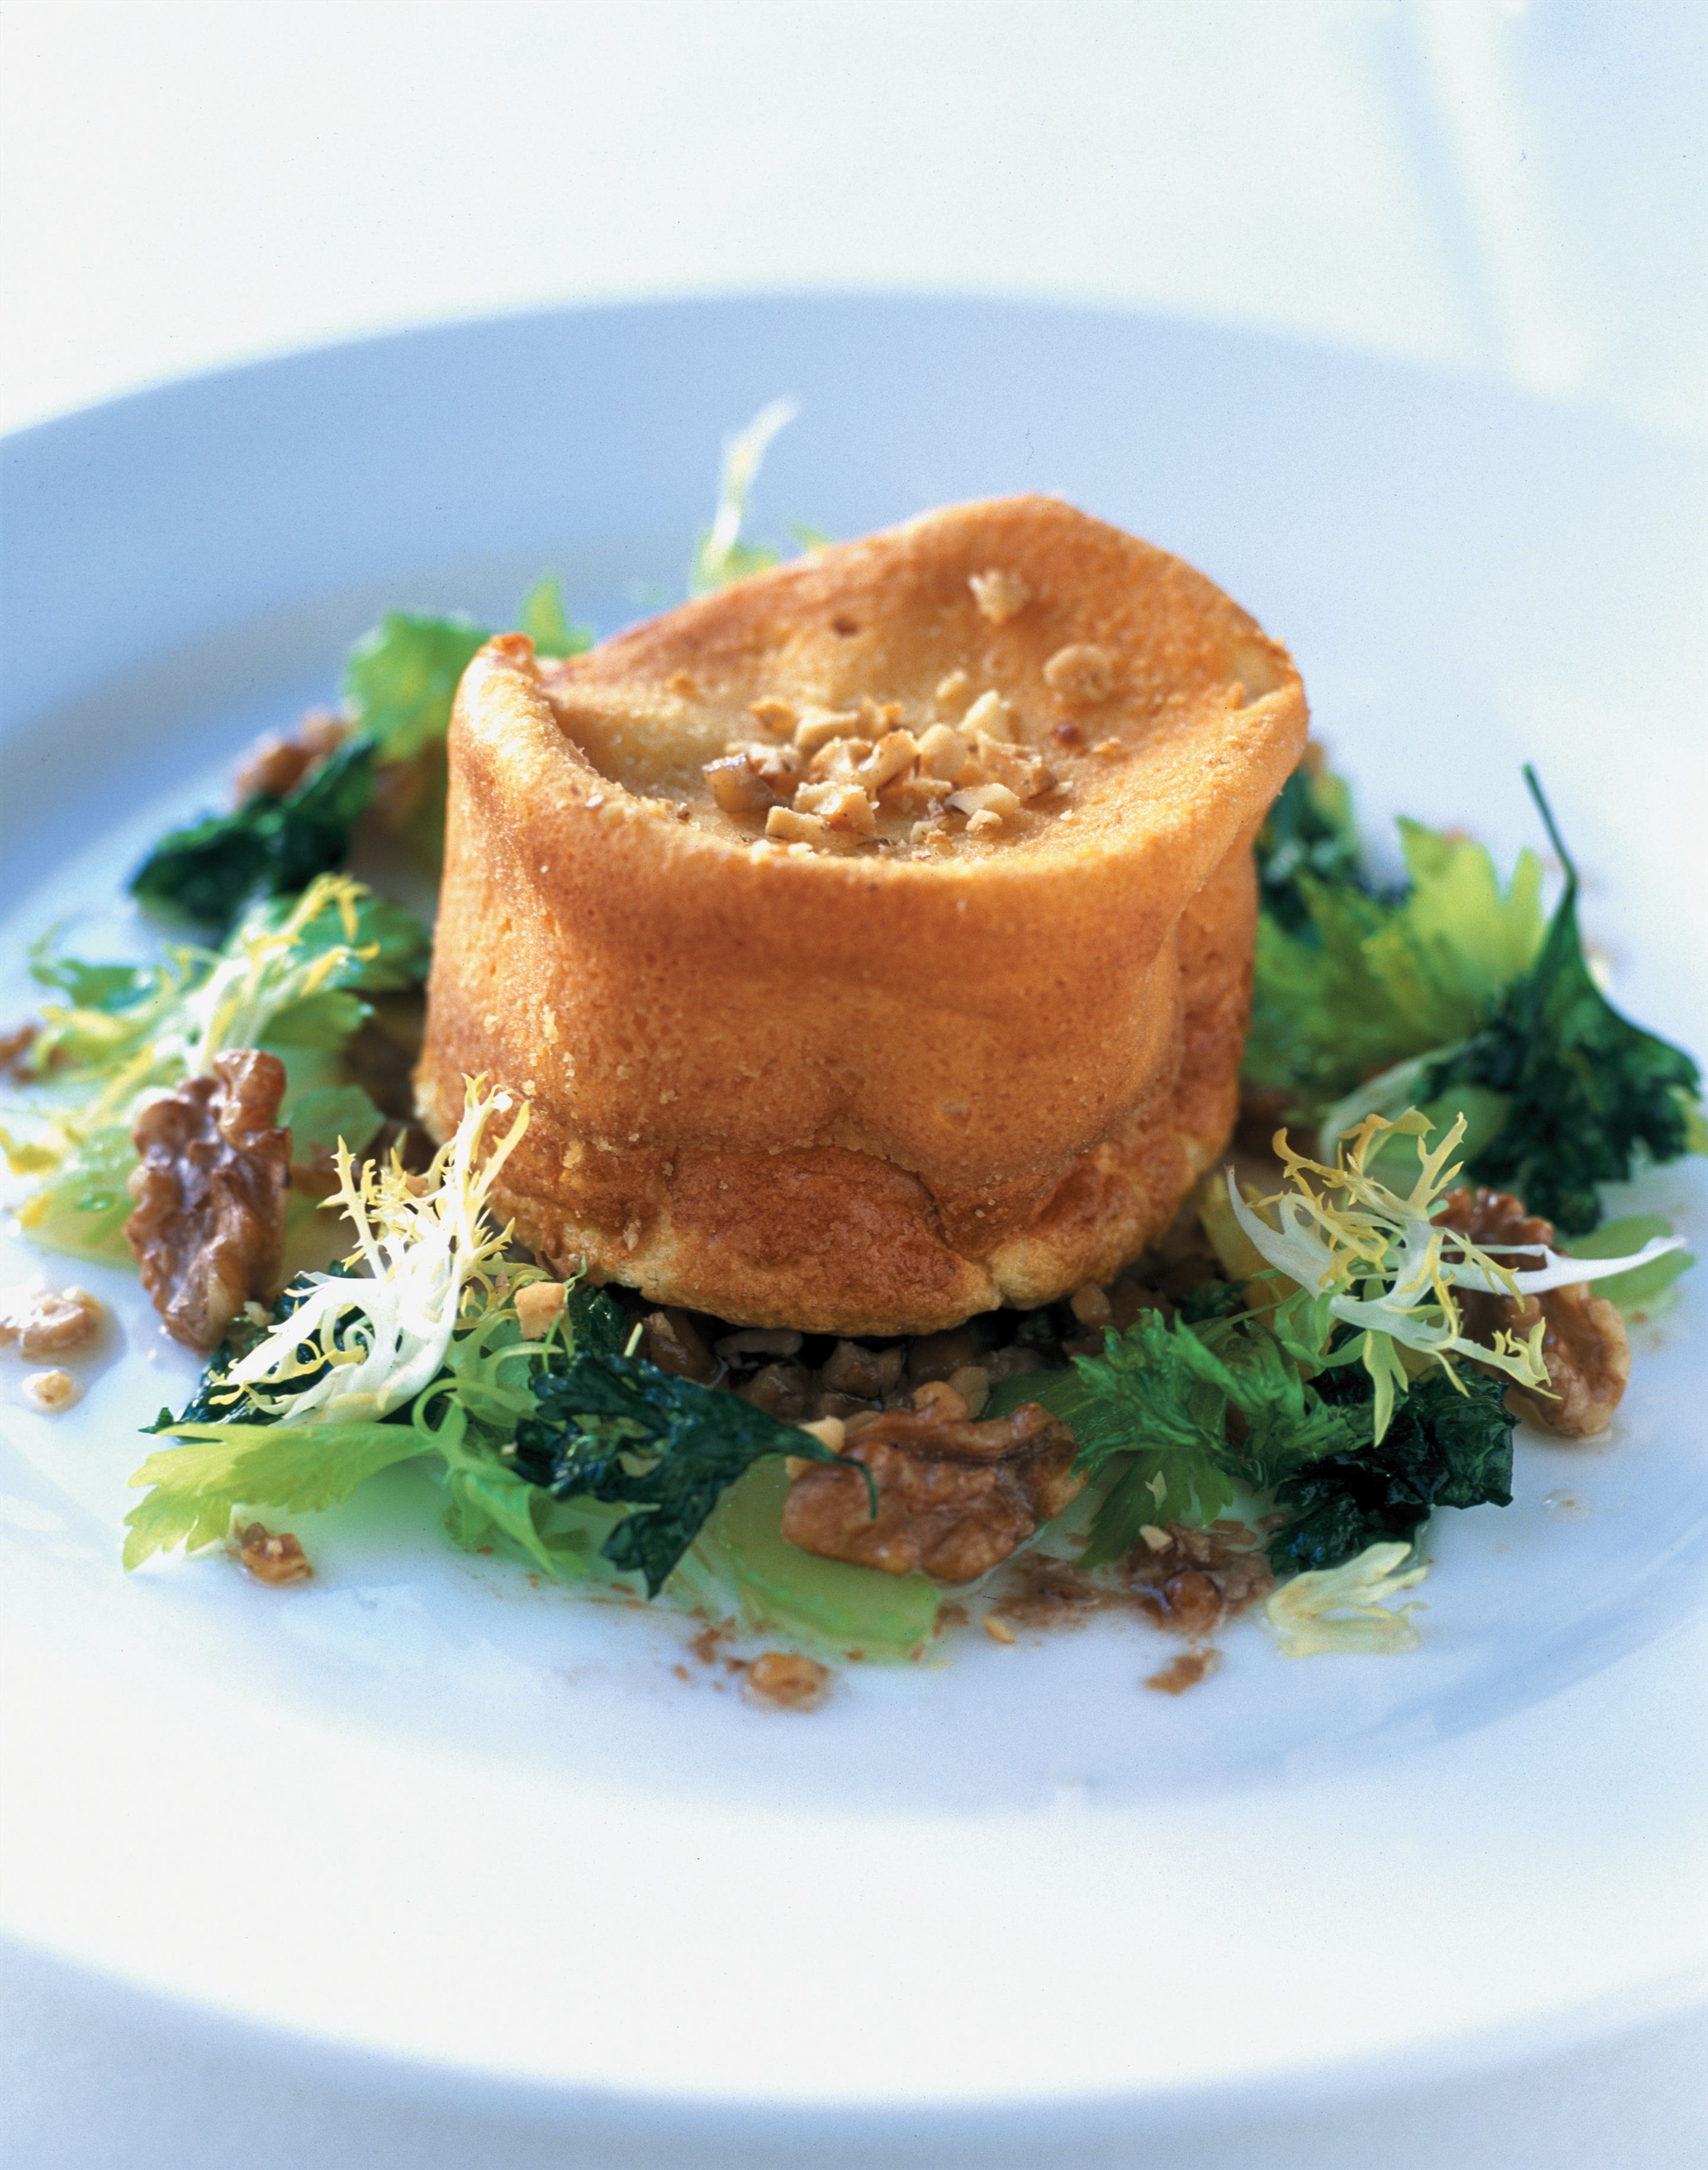 Double-baked cabecou soufflé with a celery leaf and frisée salad and walnut vinaigrette